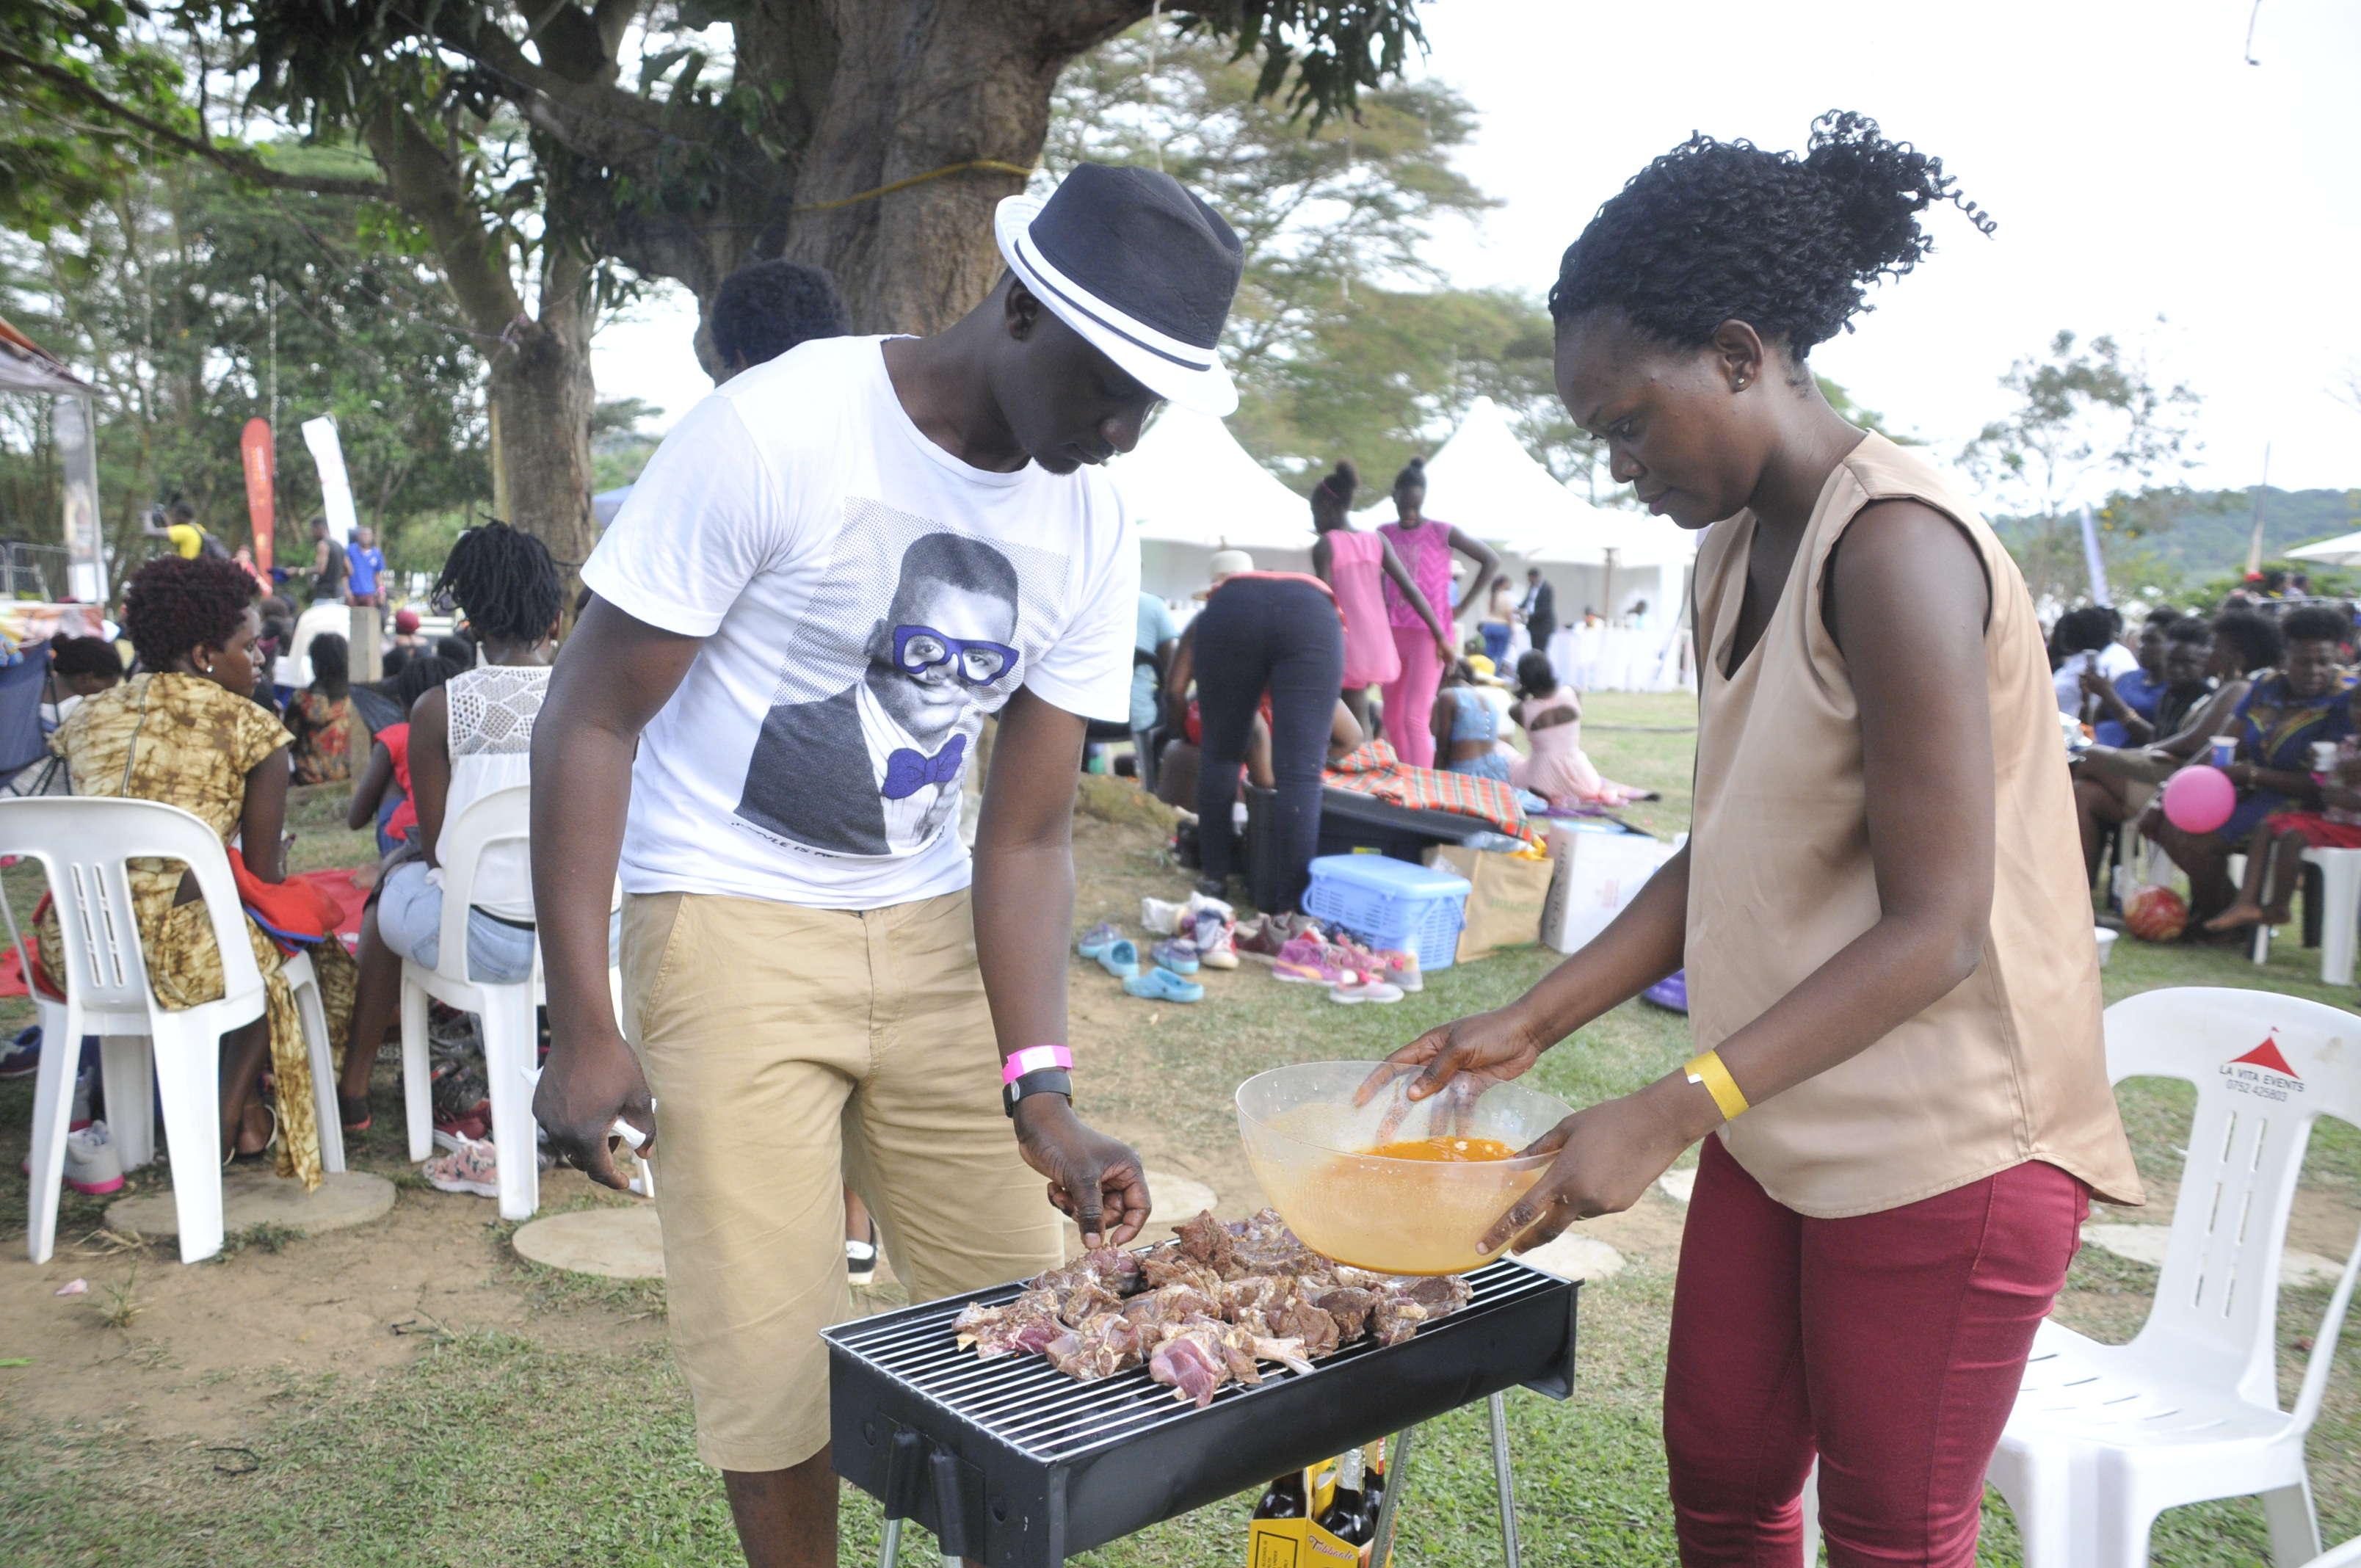 revelers-getting-their-bbq-ready-at-the-event-last-year